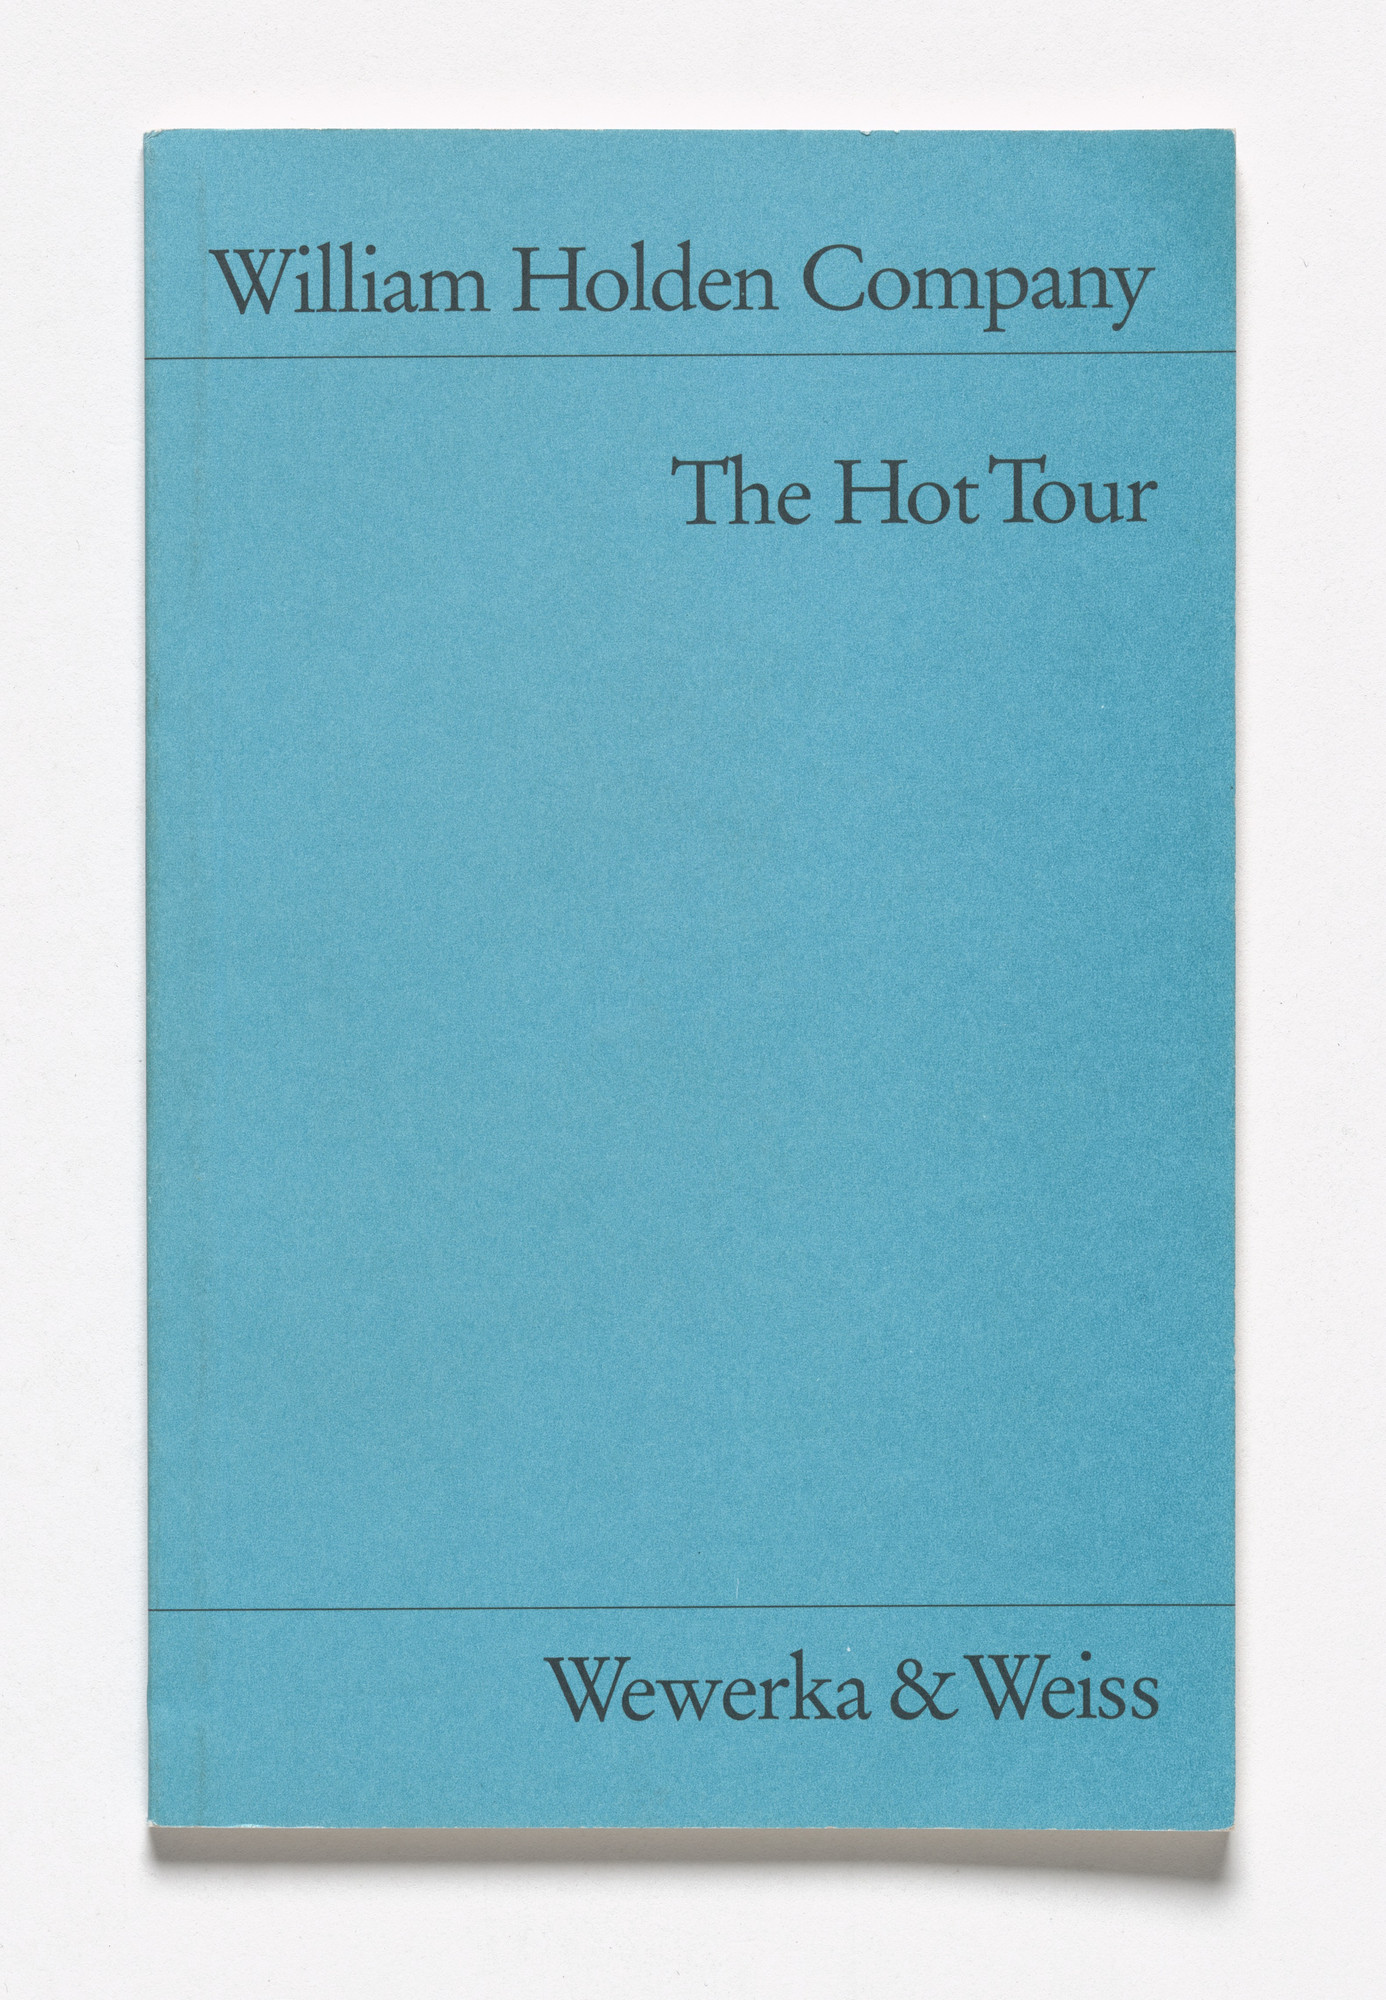 Martin Kippenberger. William Holden Company: The Hot Tour,. 1991